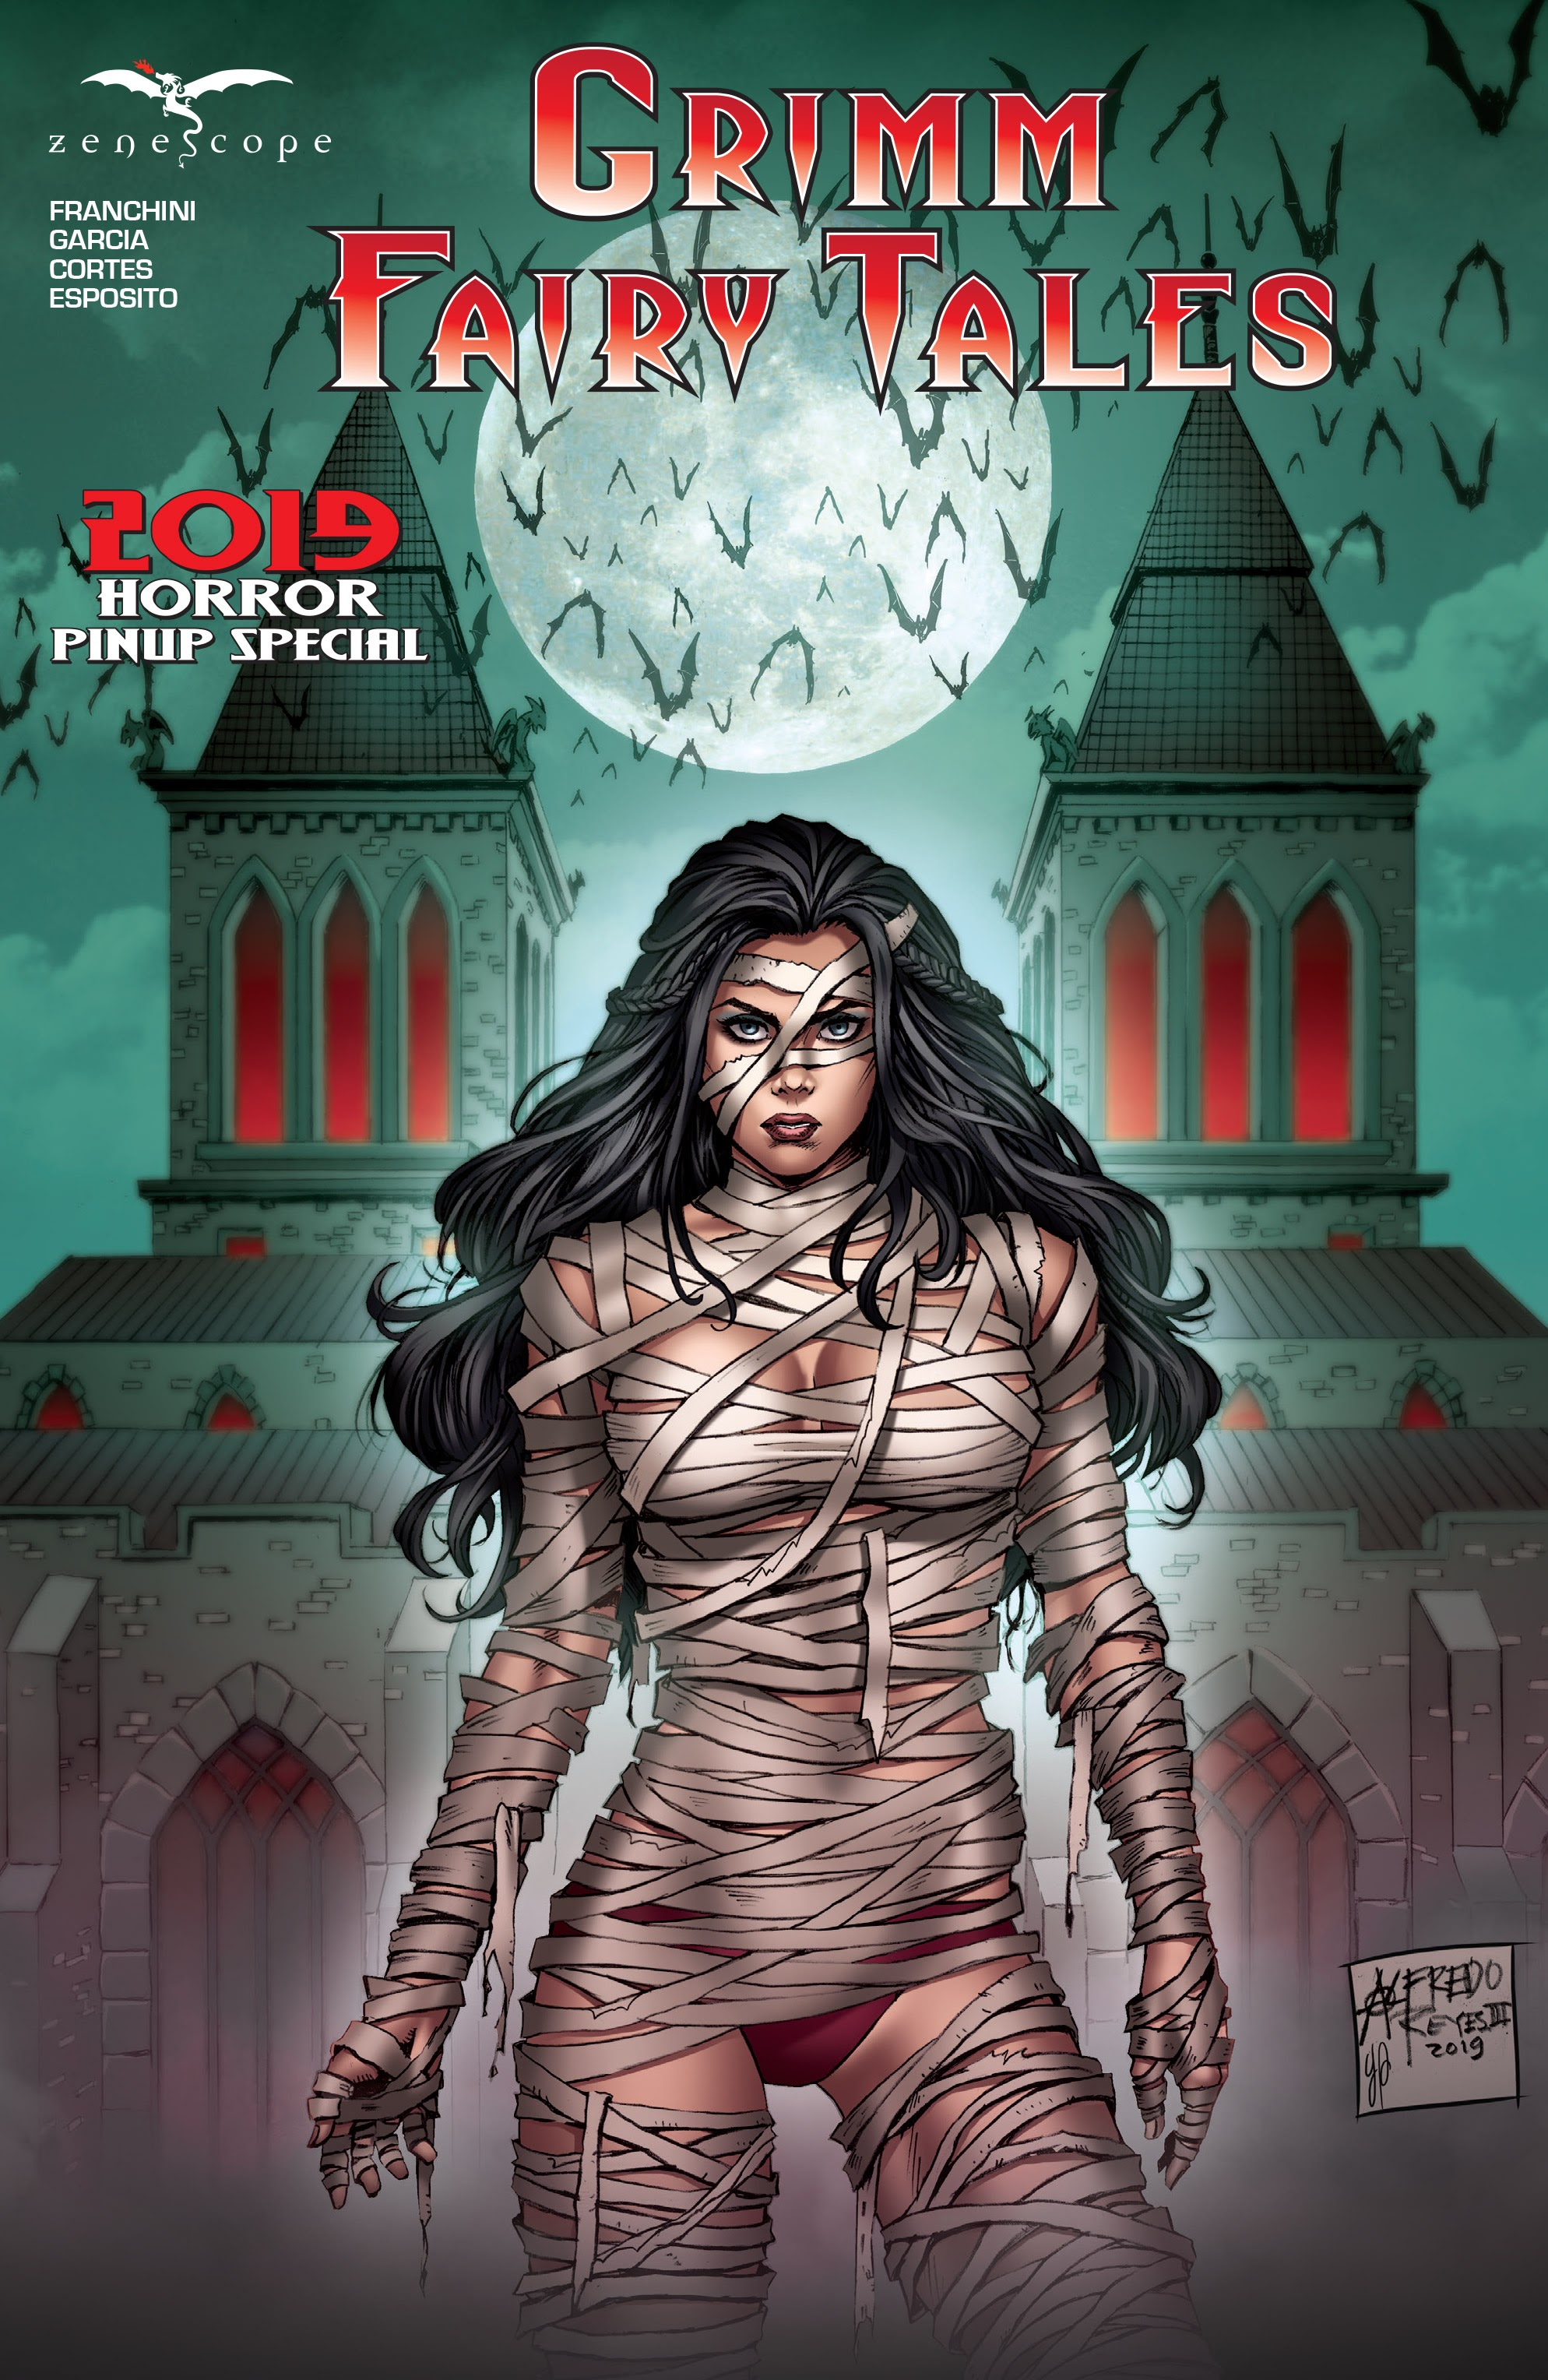 Grimm Fairy Tales 2019 Horror Pinup Special Full Page 1